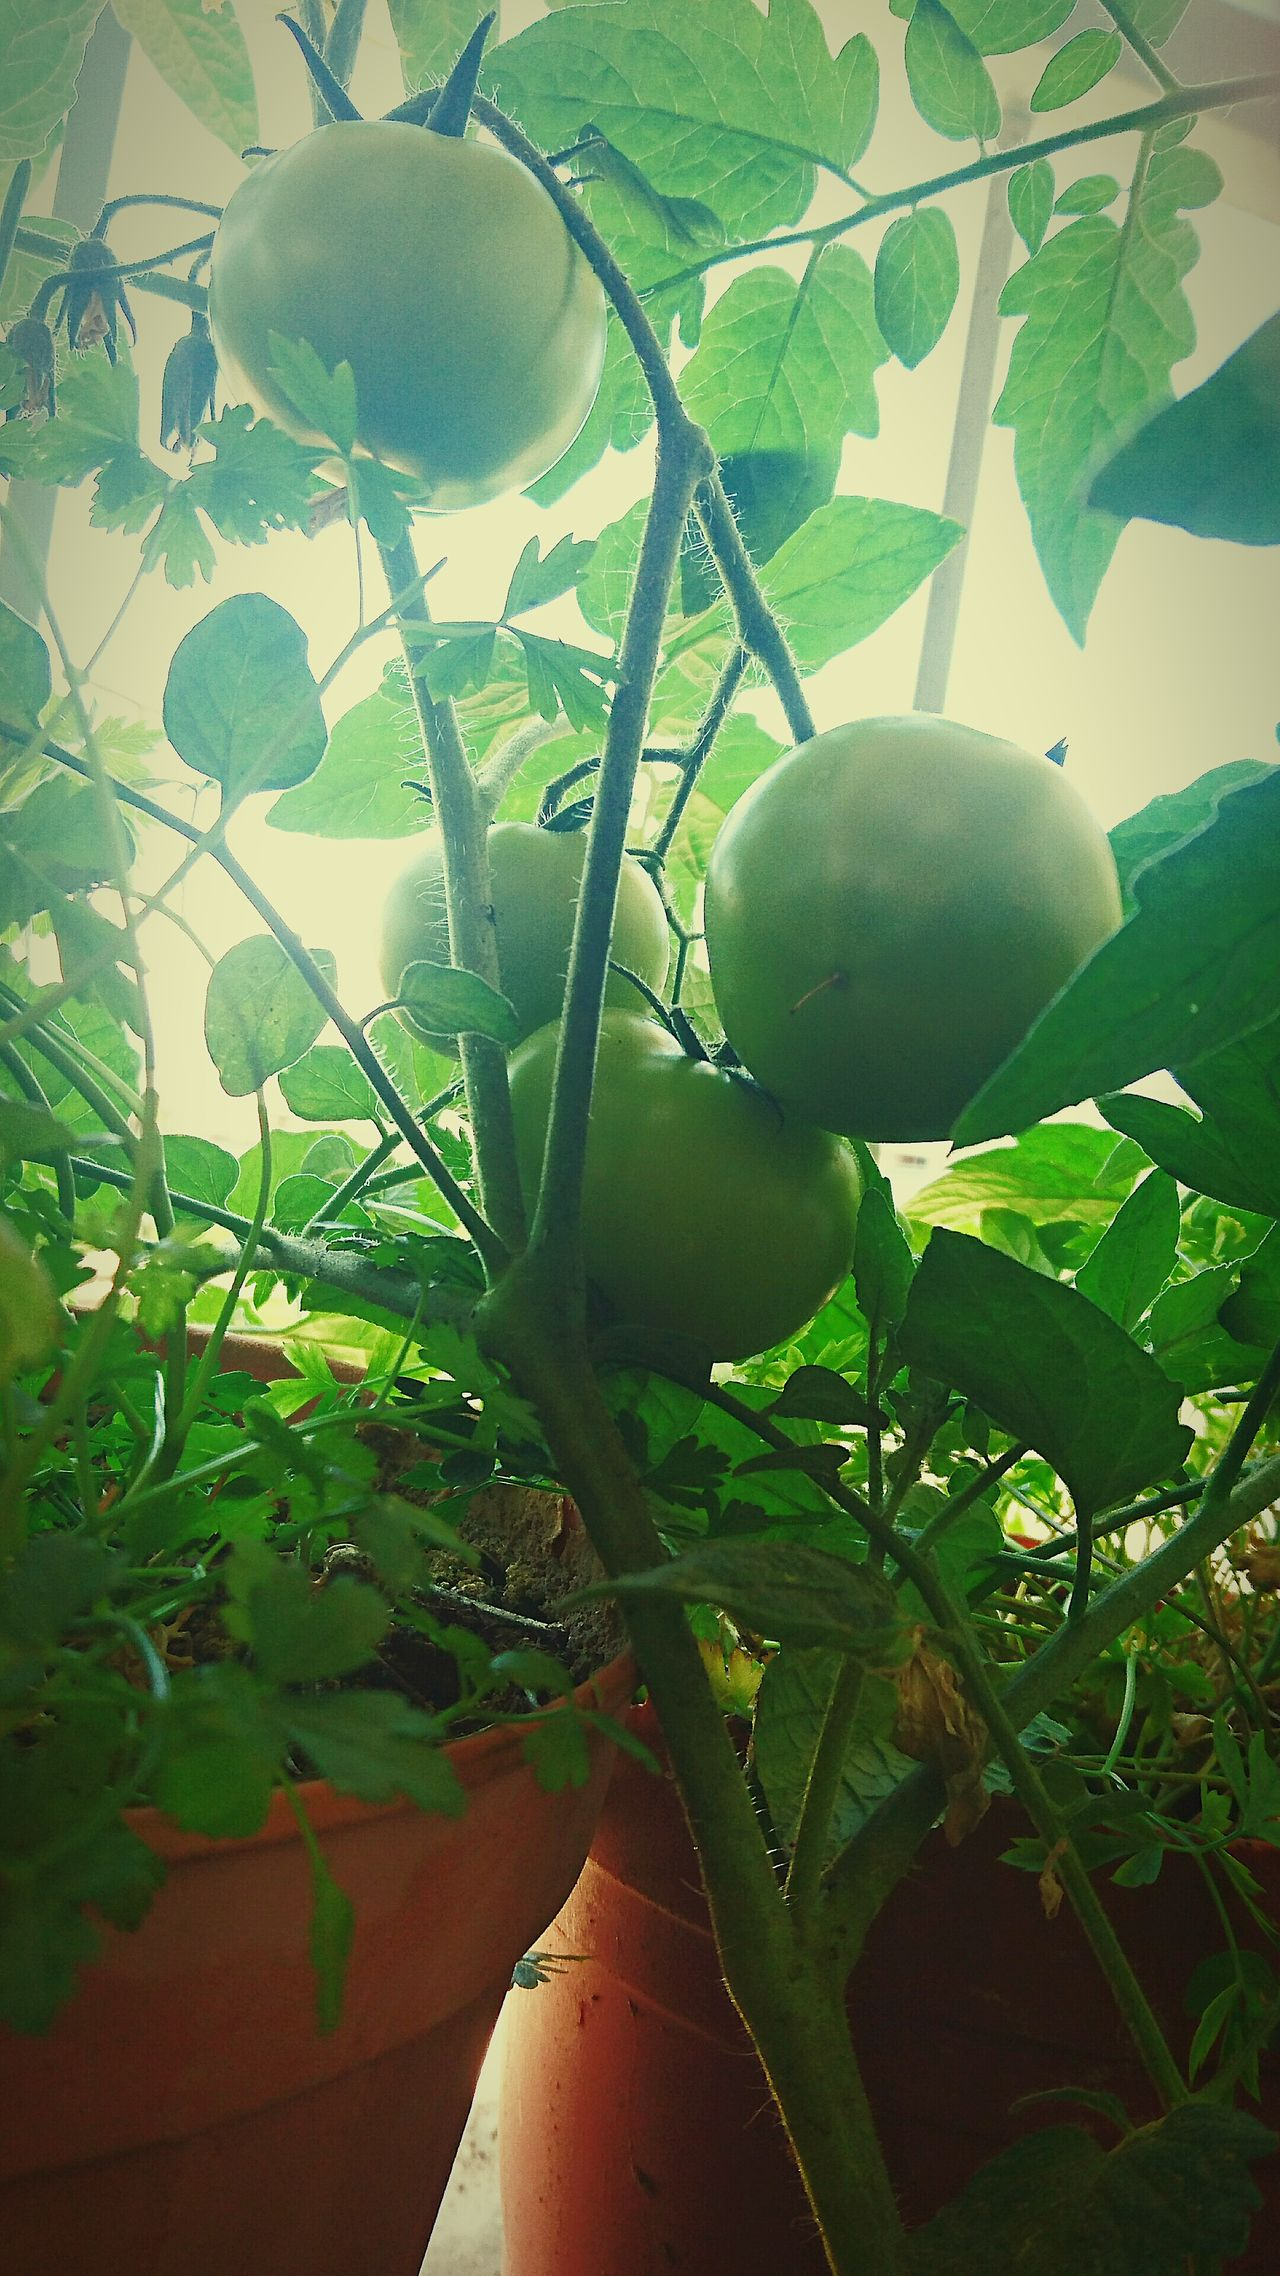 Tomato Tomatoes Green Tomatoes Green Tomato Potted Plant Plants Vegetables Balcony Garden Balcony Plants Naturesdiversities Natures Diversities Taking Photos Green Planting Tomatoes Pot Plant Vegetable Vegetable Garden Balcony Hobby Pot Tomatoplant Tomato Plant Green Vegetables Green Vegetable Vegetarian Food